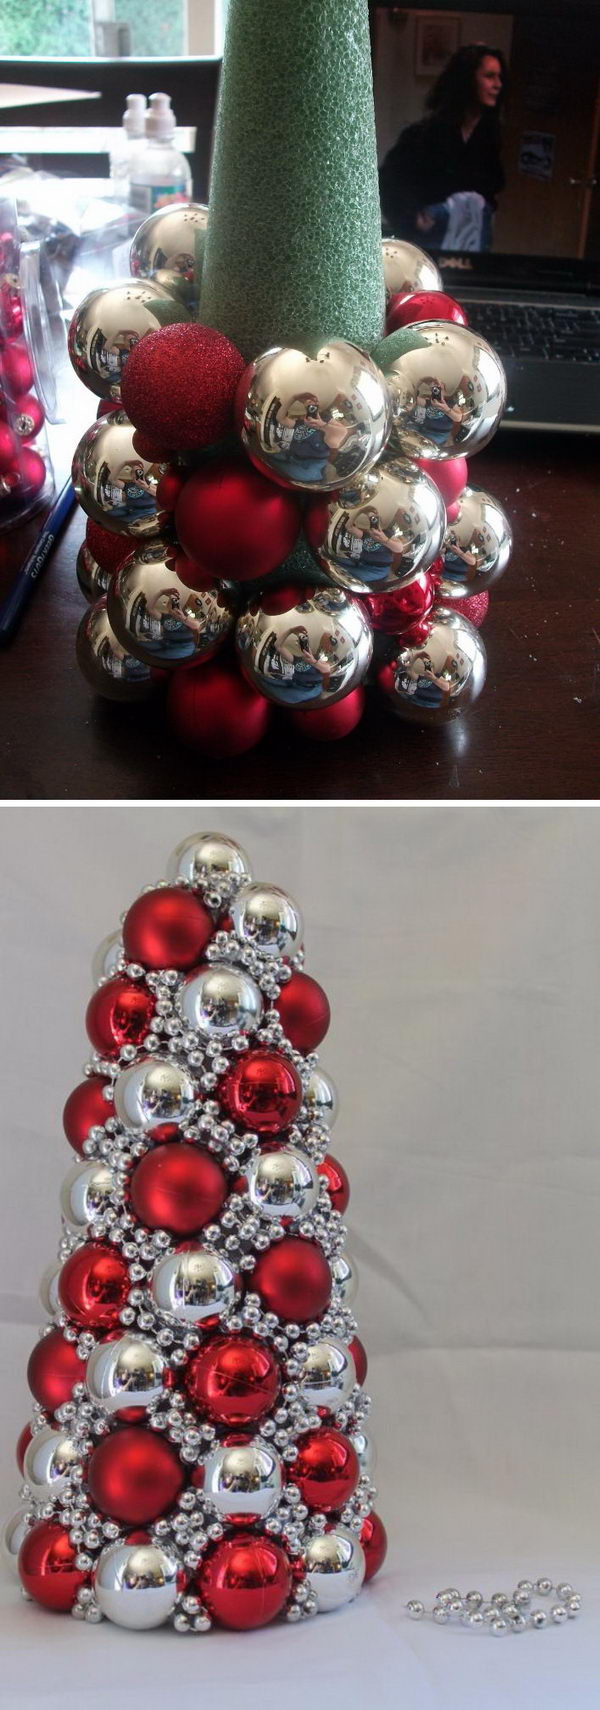 20 great ways to decorate your home with christmas ornaments for How to design a christmas ornament